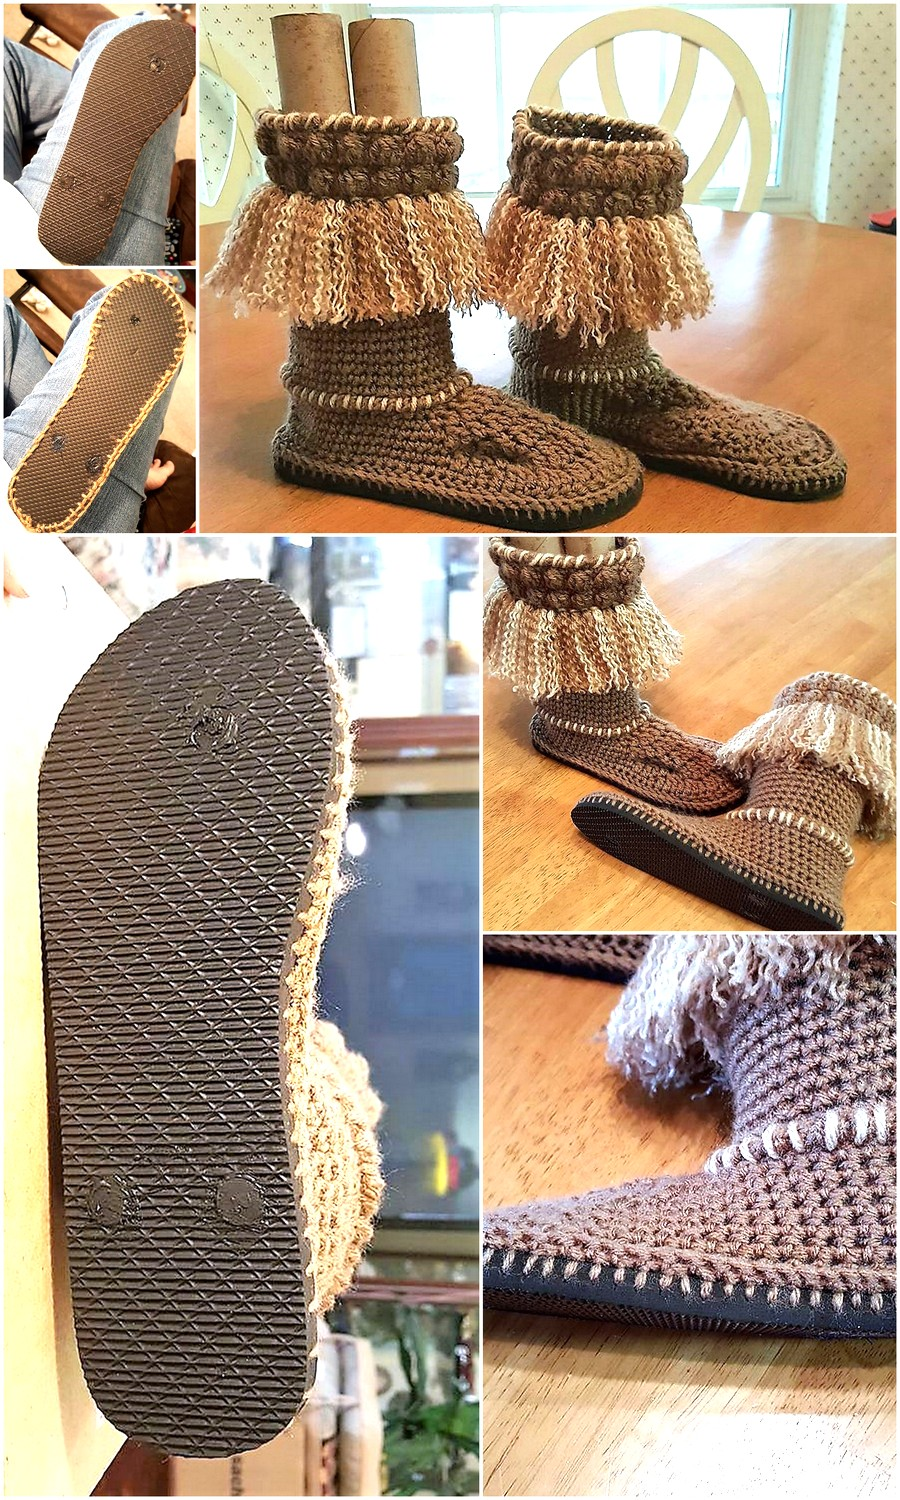 diy-crocheted-shoes